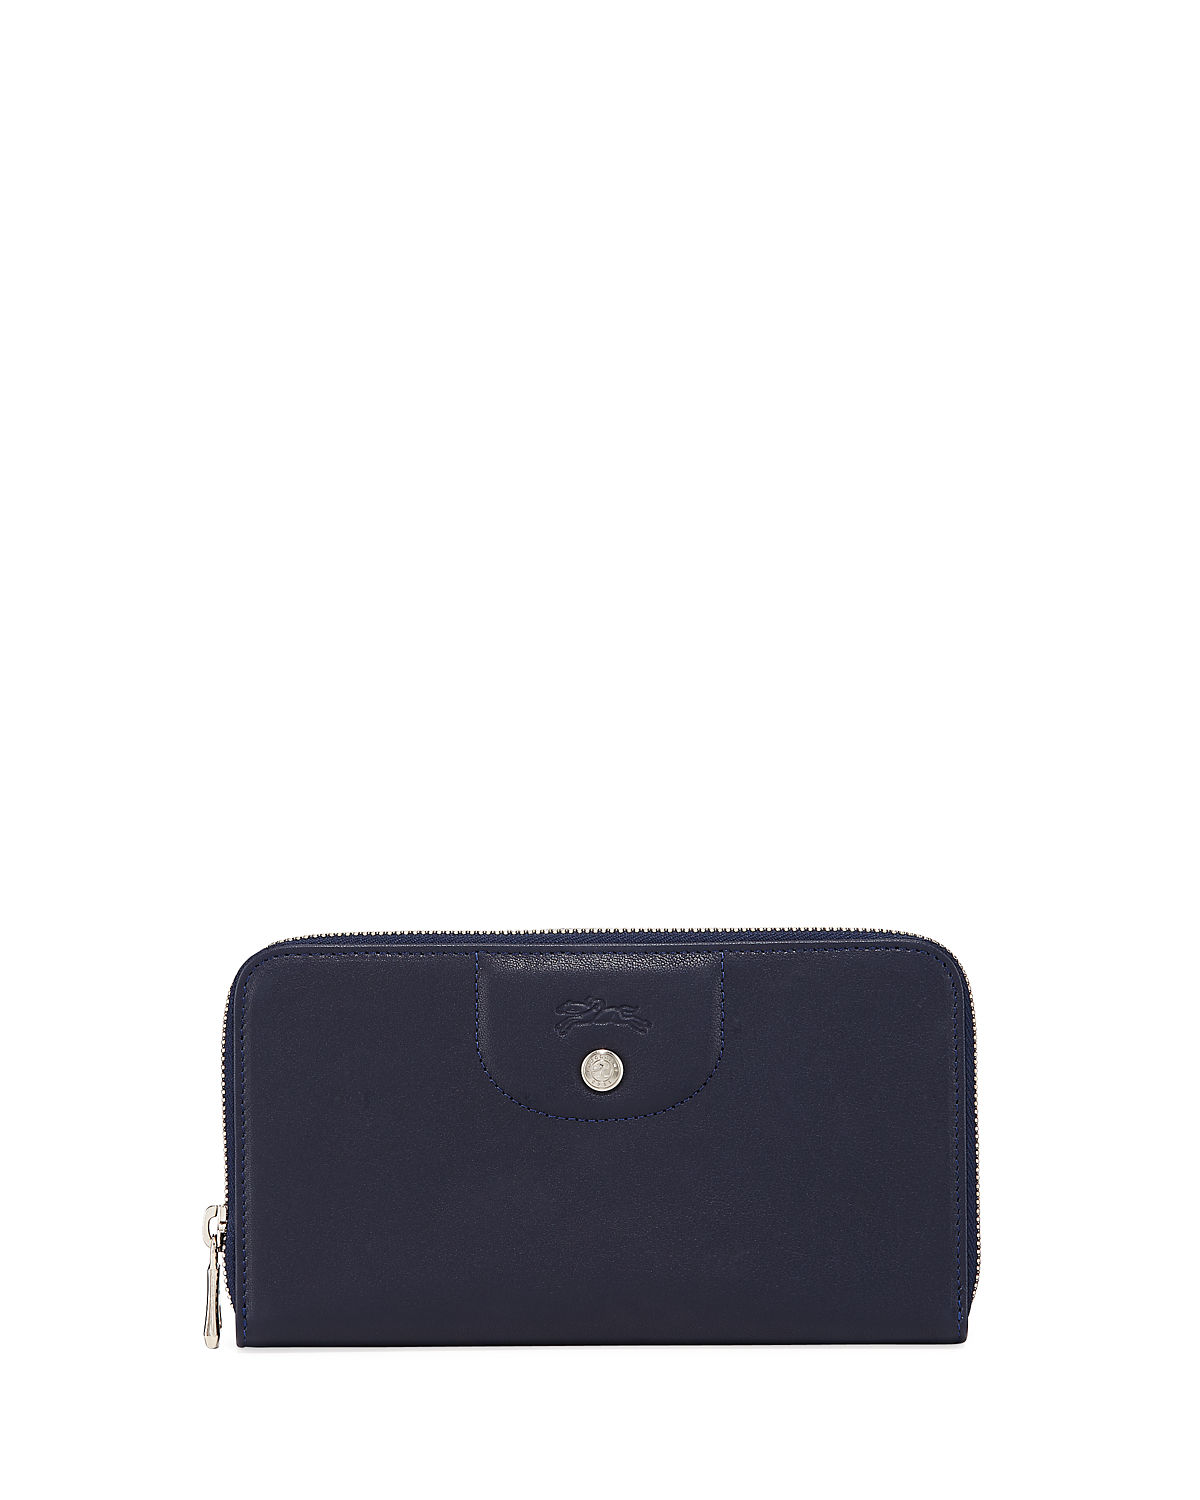 Le Pliage Cuir Etoiles Long Leather Zip-Around Wallet